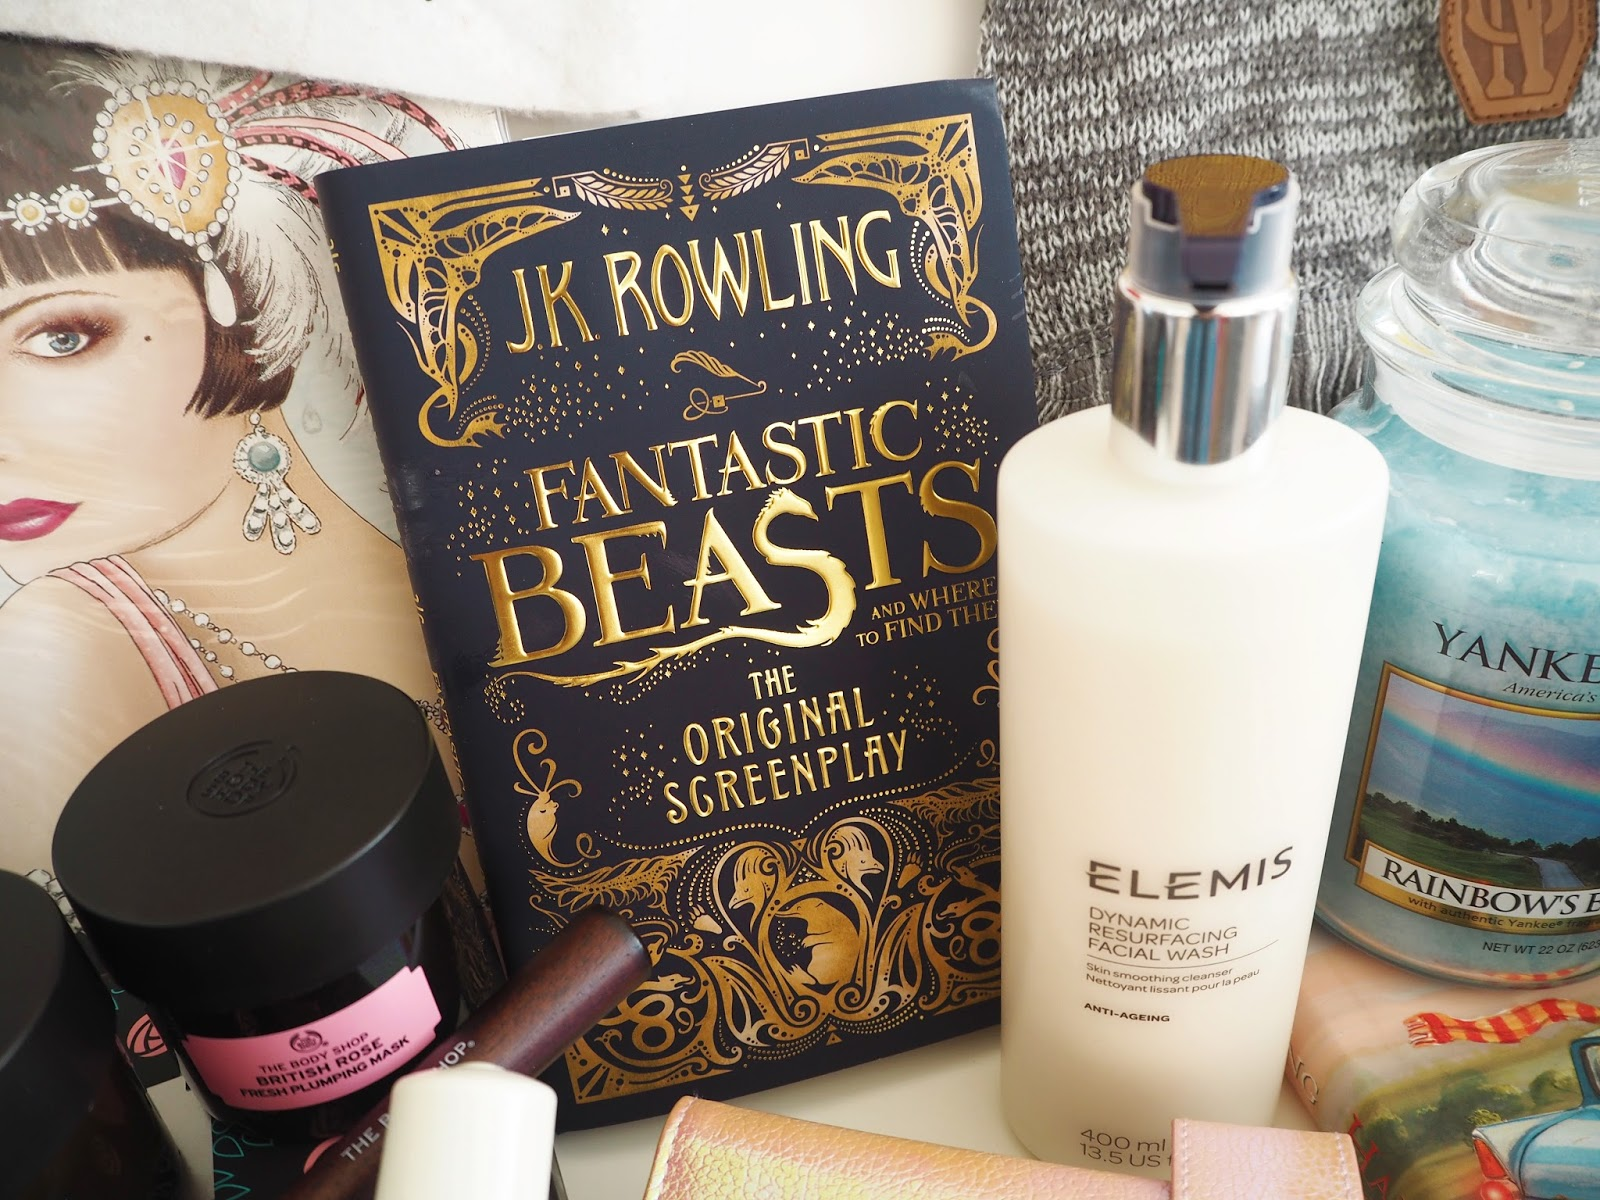 What I Got For Christmas 2016, Katie Kirk Loves, Harry Potter, Fantastic Beasts & Where To Find Them, Newt Scamander, Christmas Gifts, Christmas Presents, UK Blogger, Fashion Blogger, Beauty Blogger, Lifestyle Blogger, Present Haul